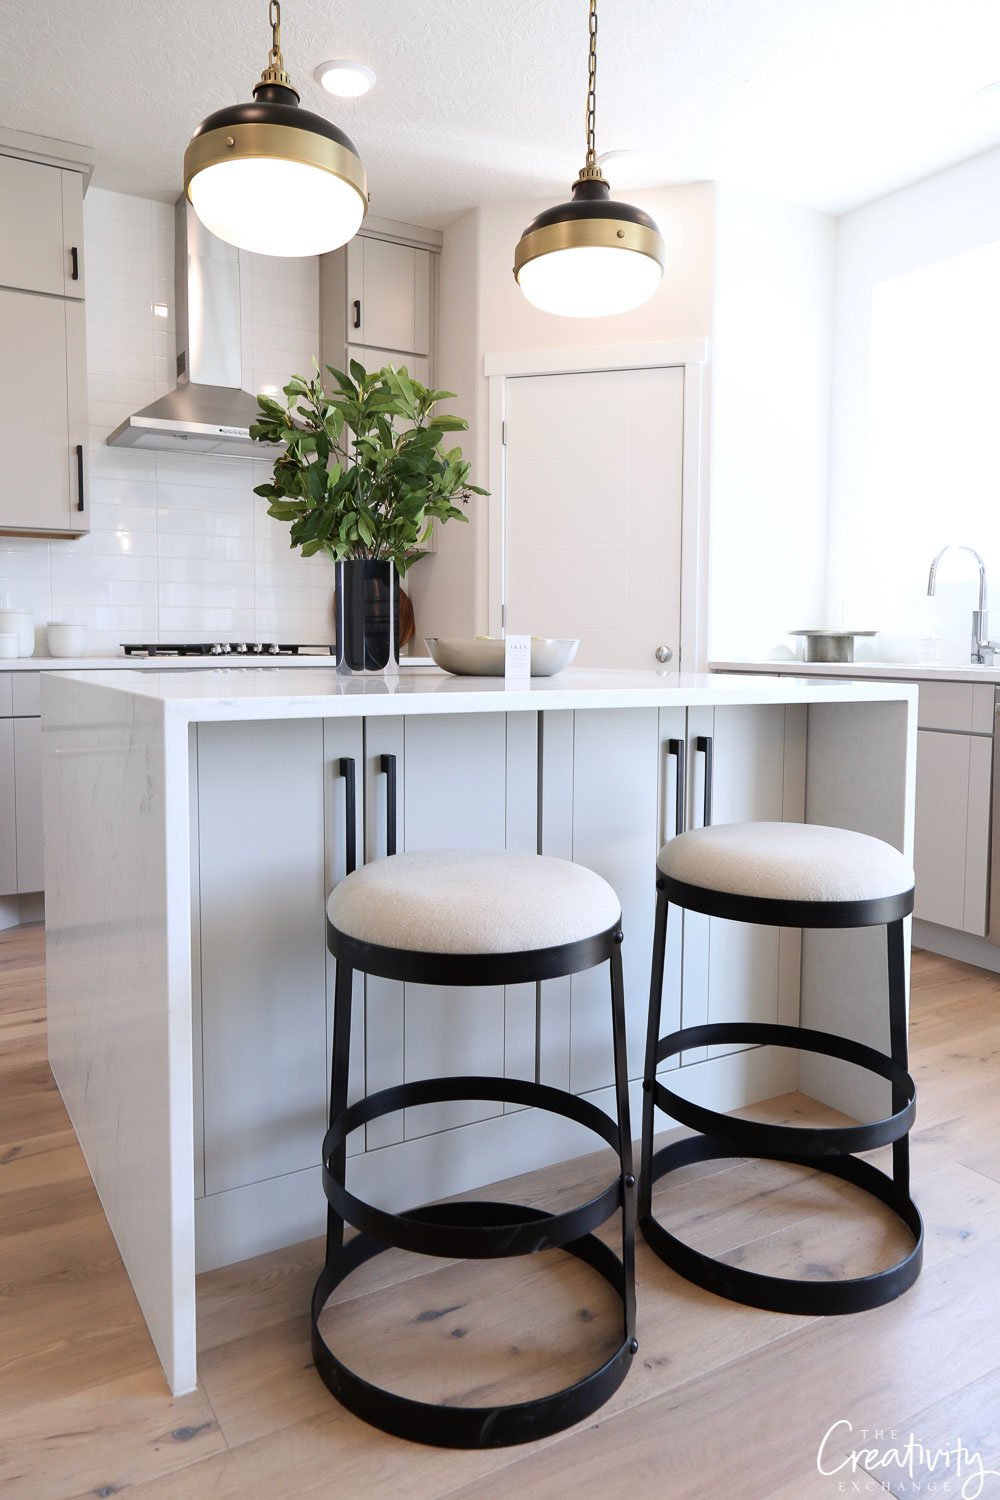 Kitchen stools can make the room